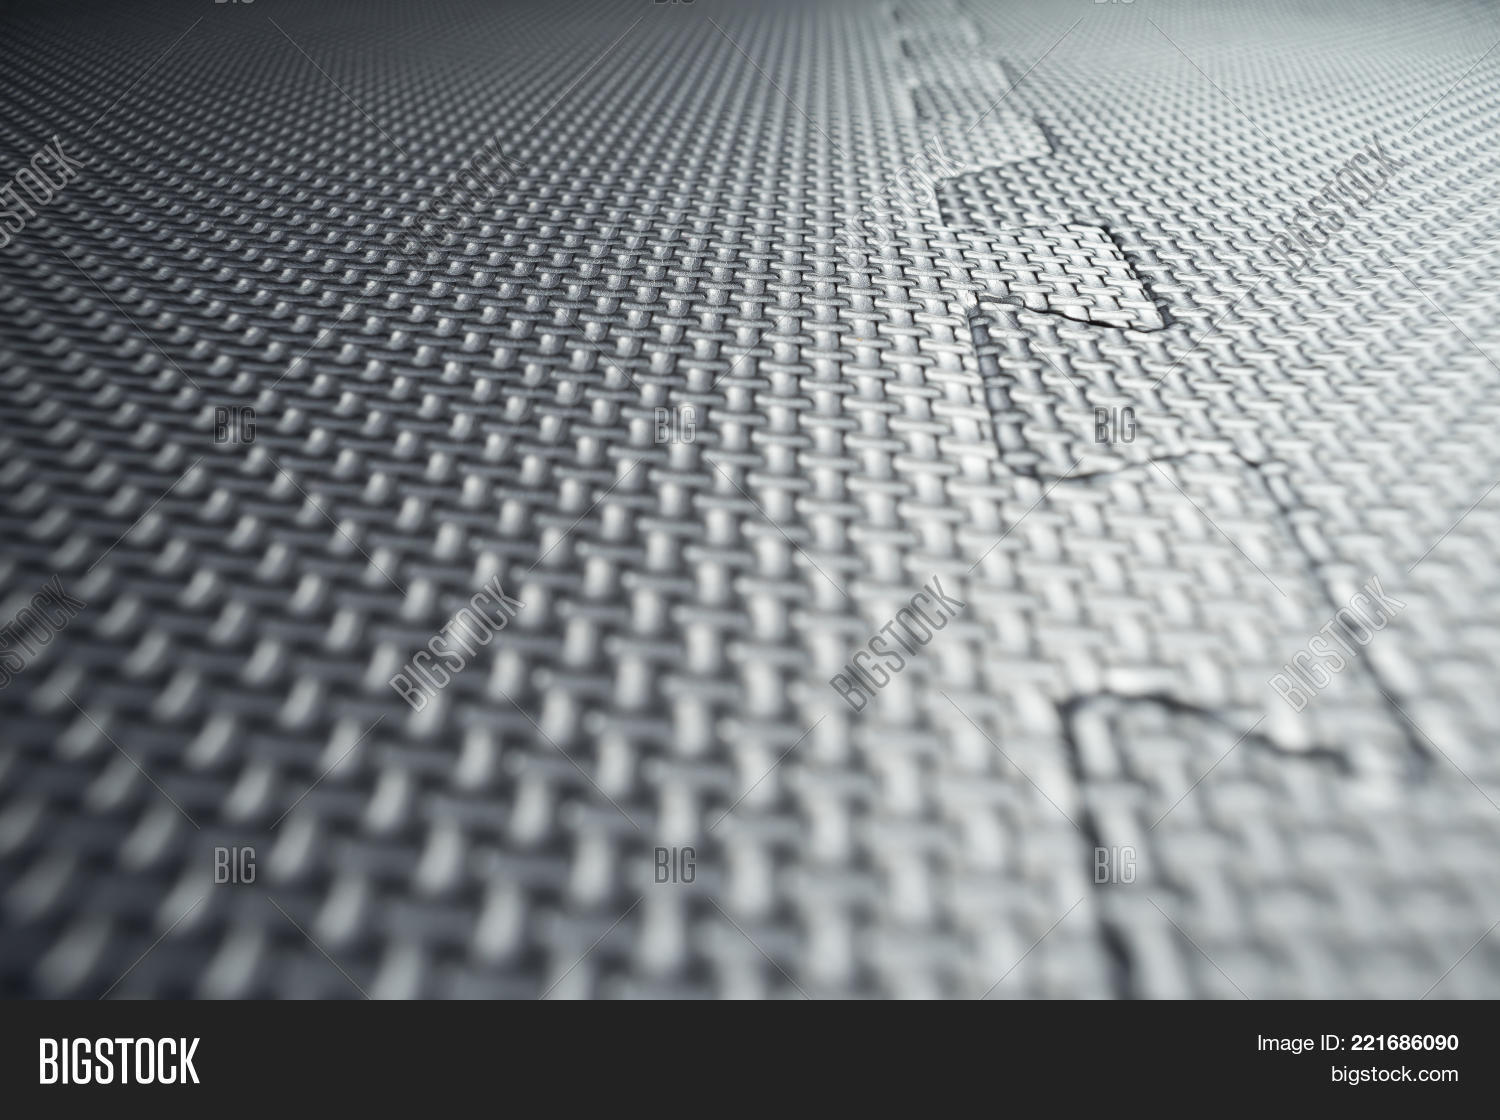 Heavy Duty Black Image Photo Free Trial Bigstock - How to clean black rubber gym flooring